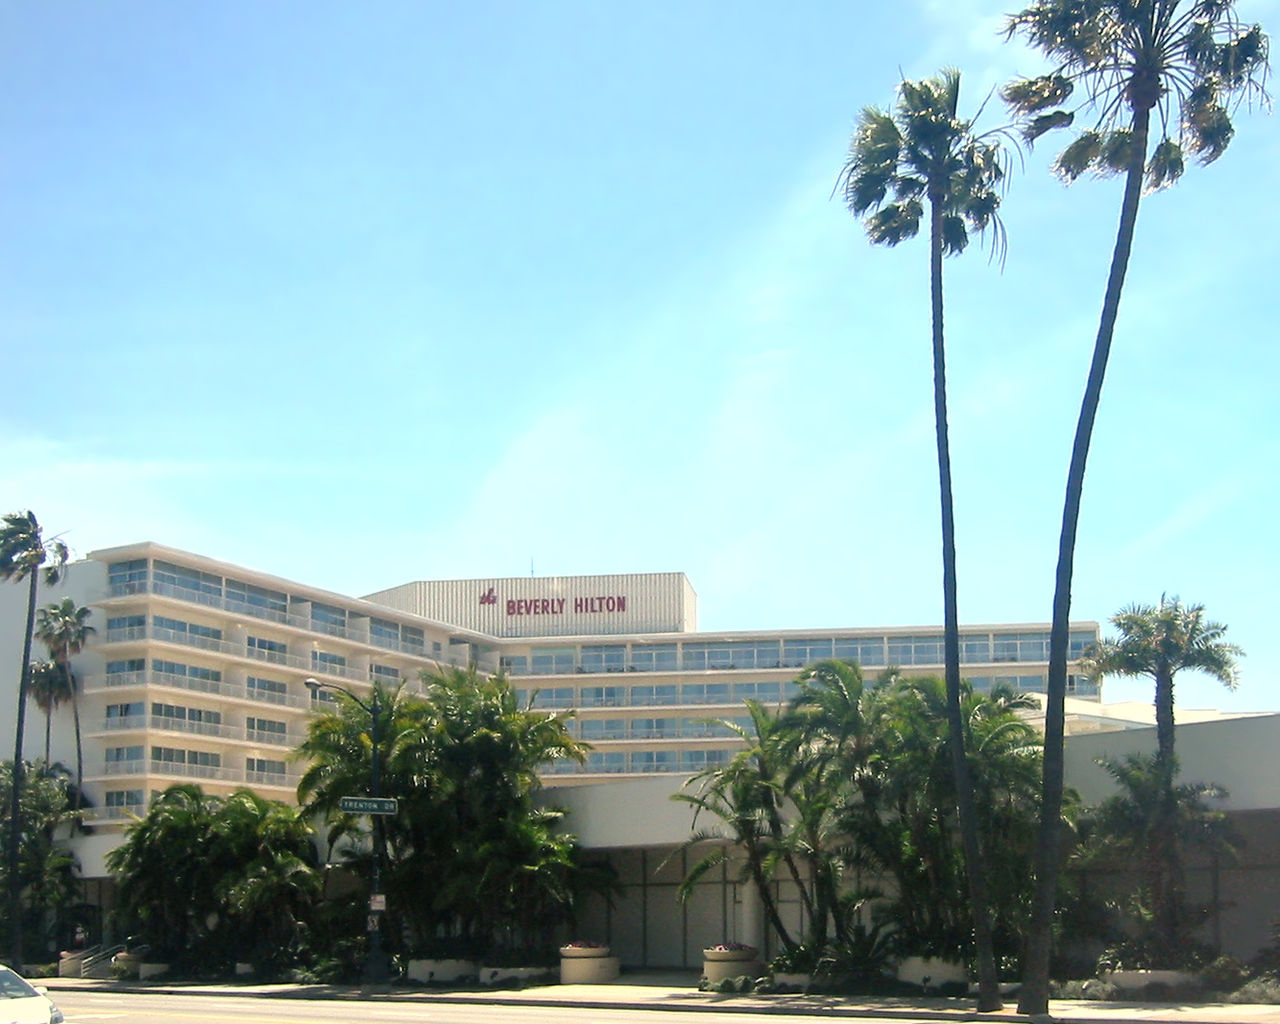 The Wanda Group is proposing to add a luxury hotel to their planned $1 billion condominium development next door to the Beverly Hilton Hotel